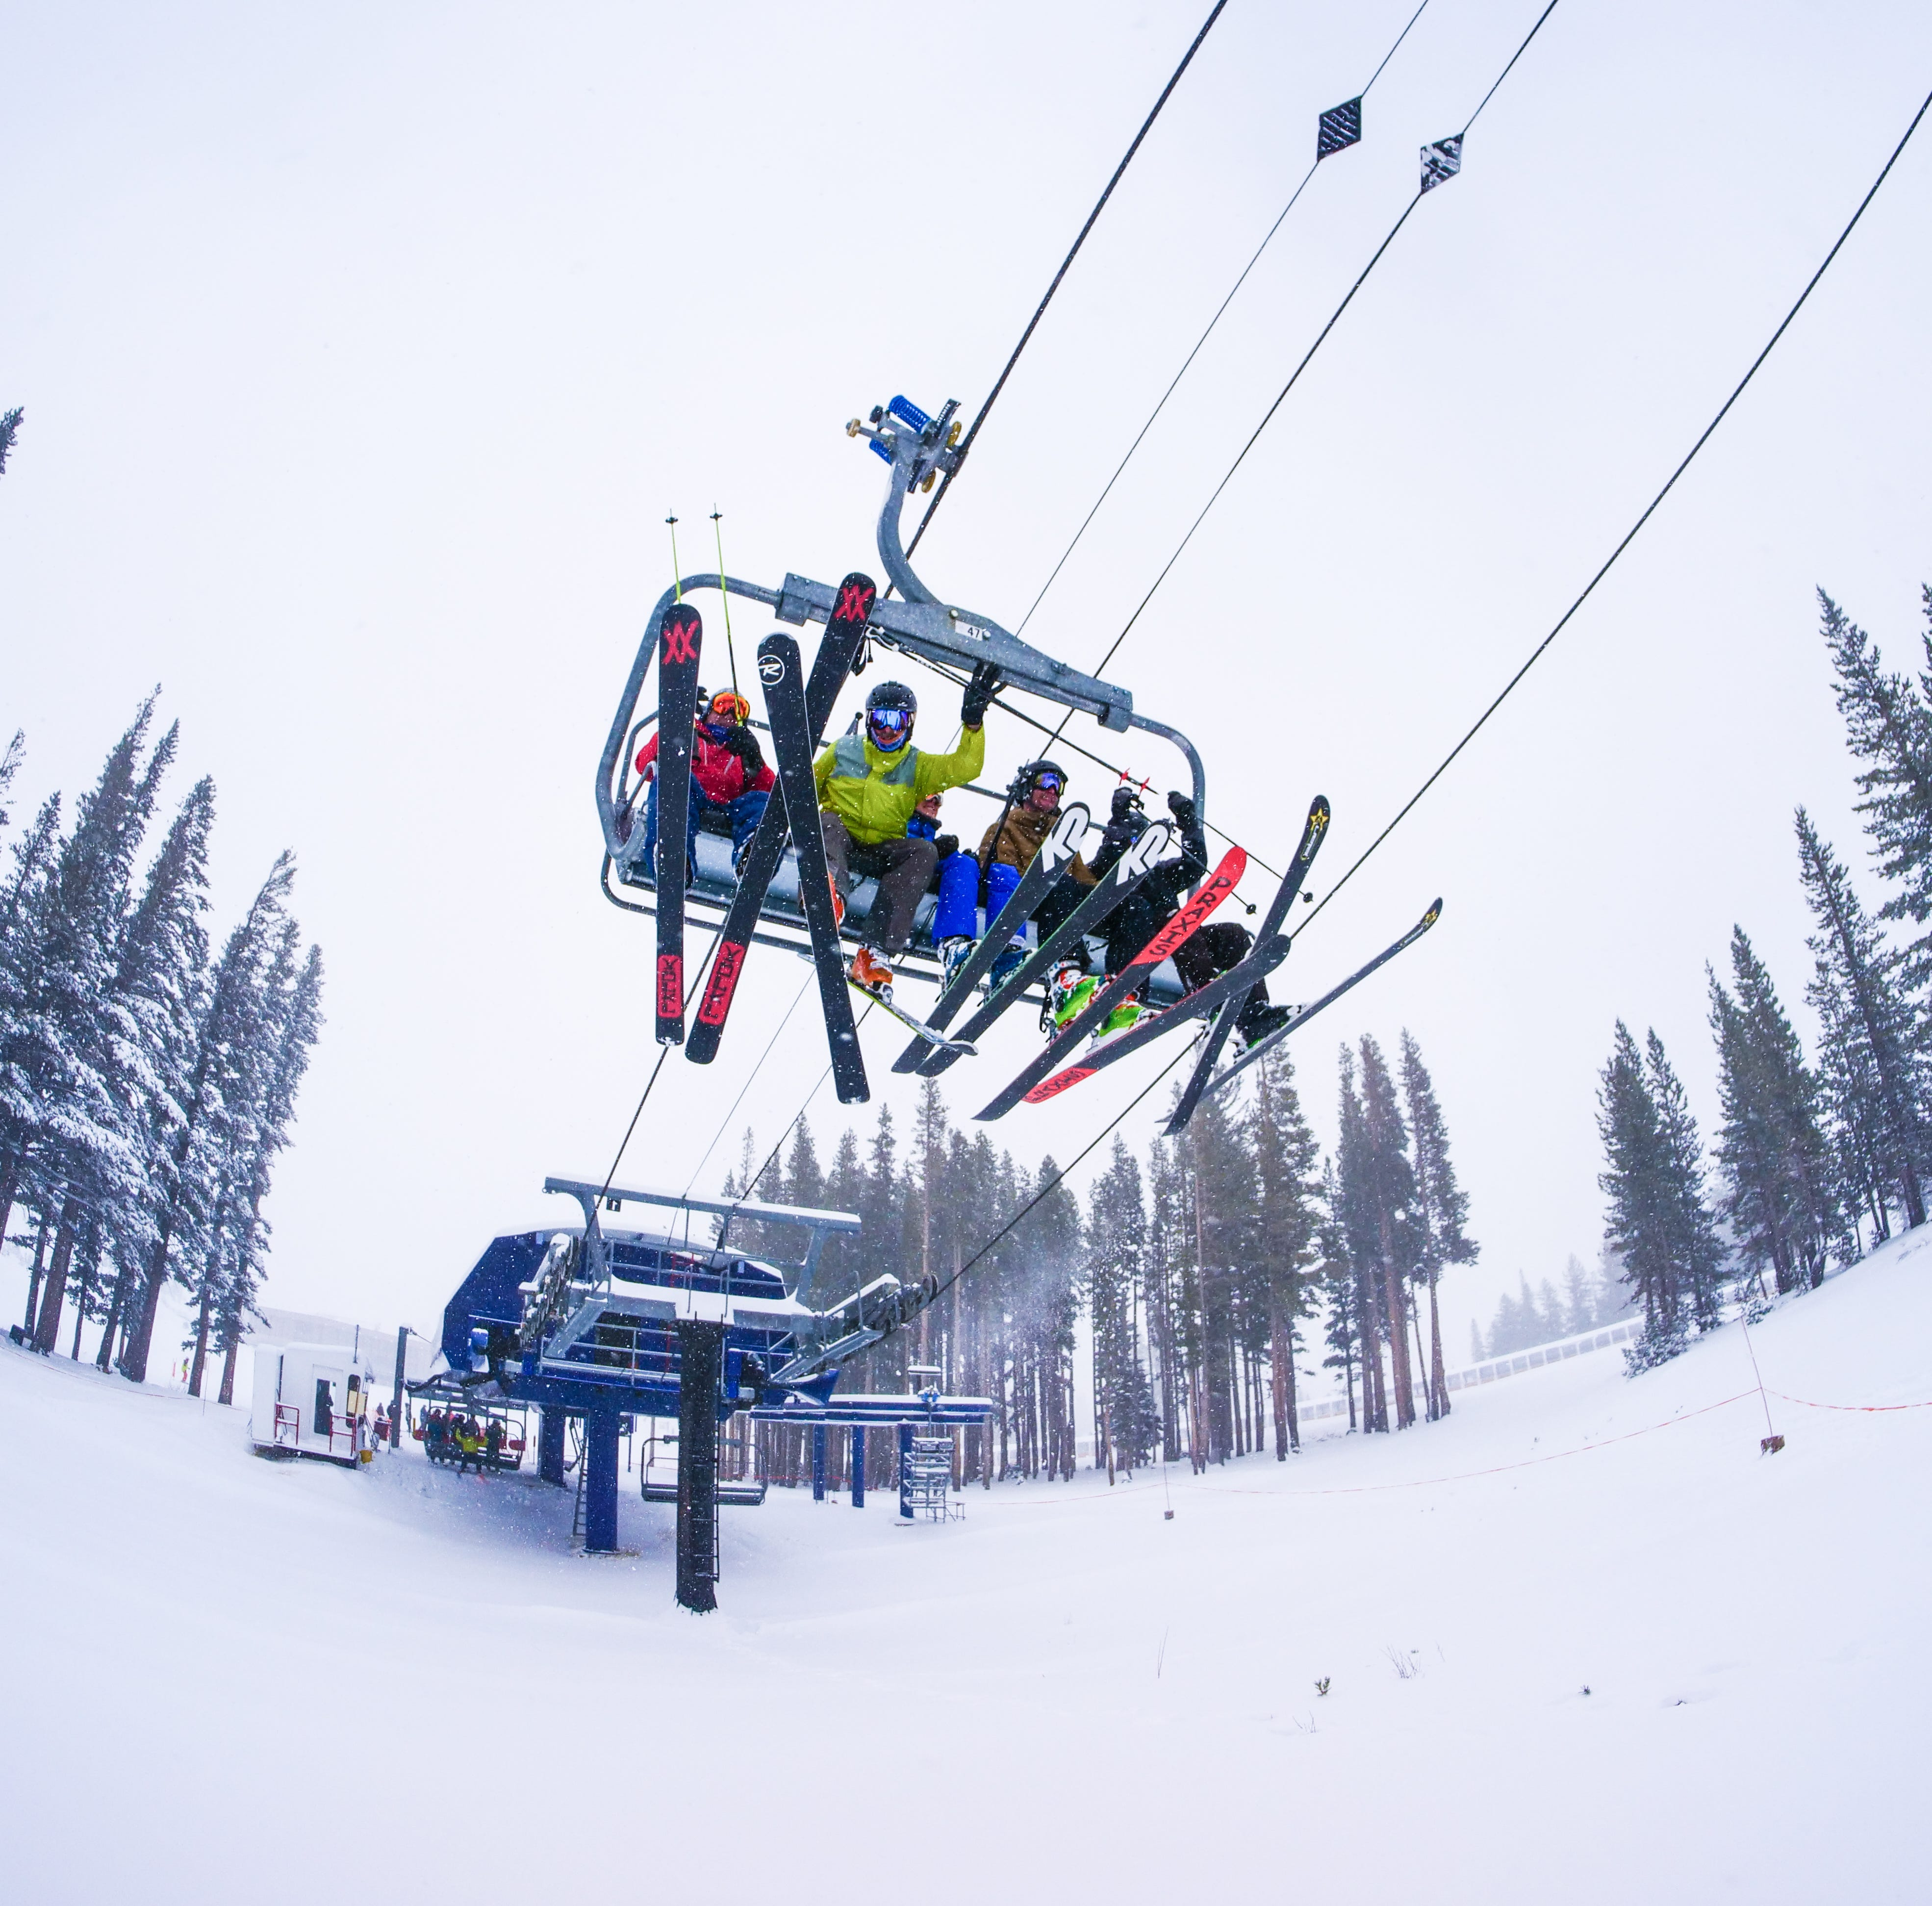 Mt. Rose ski area expansion plan gets OK'd, will add 112 acres across Mount Rose Highway